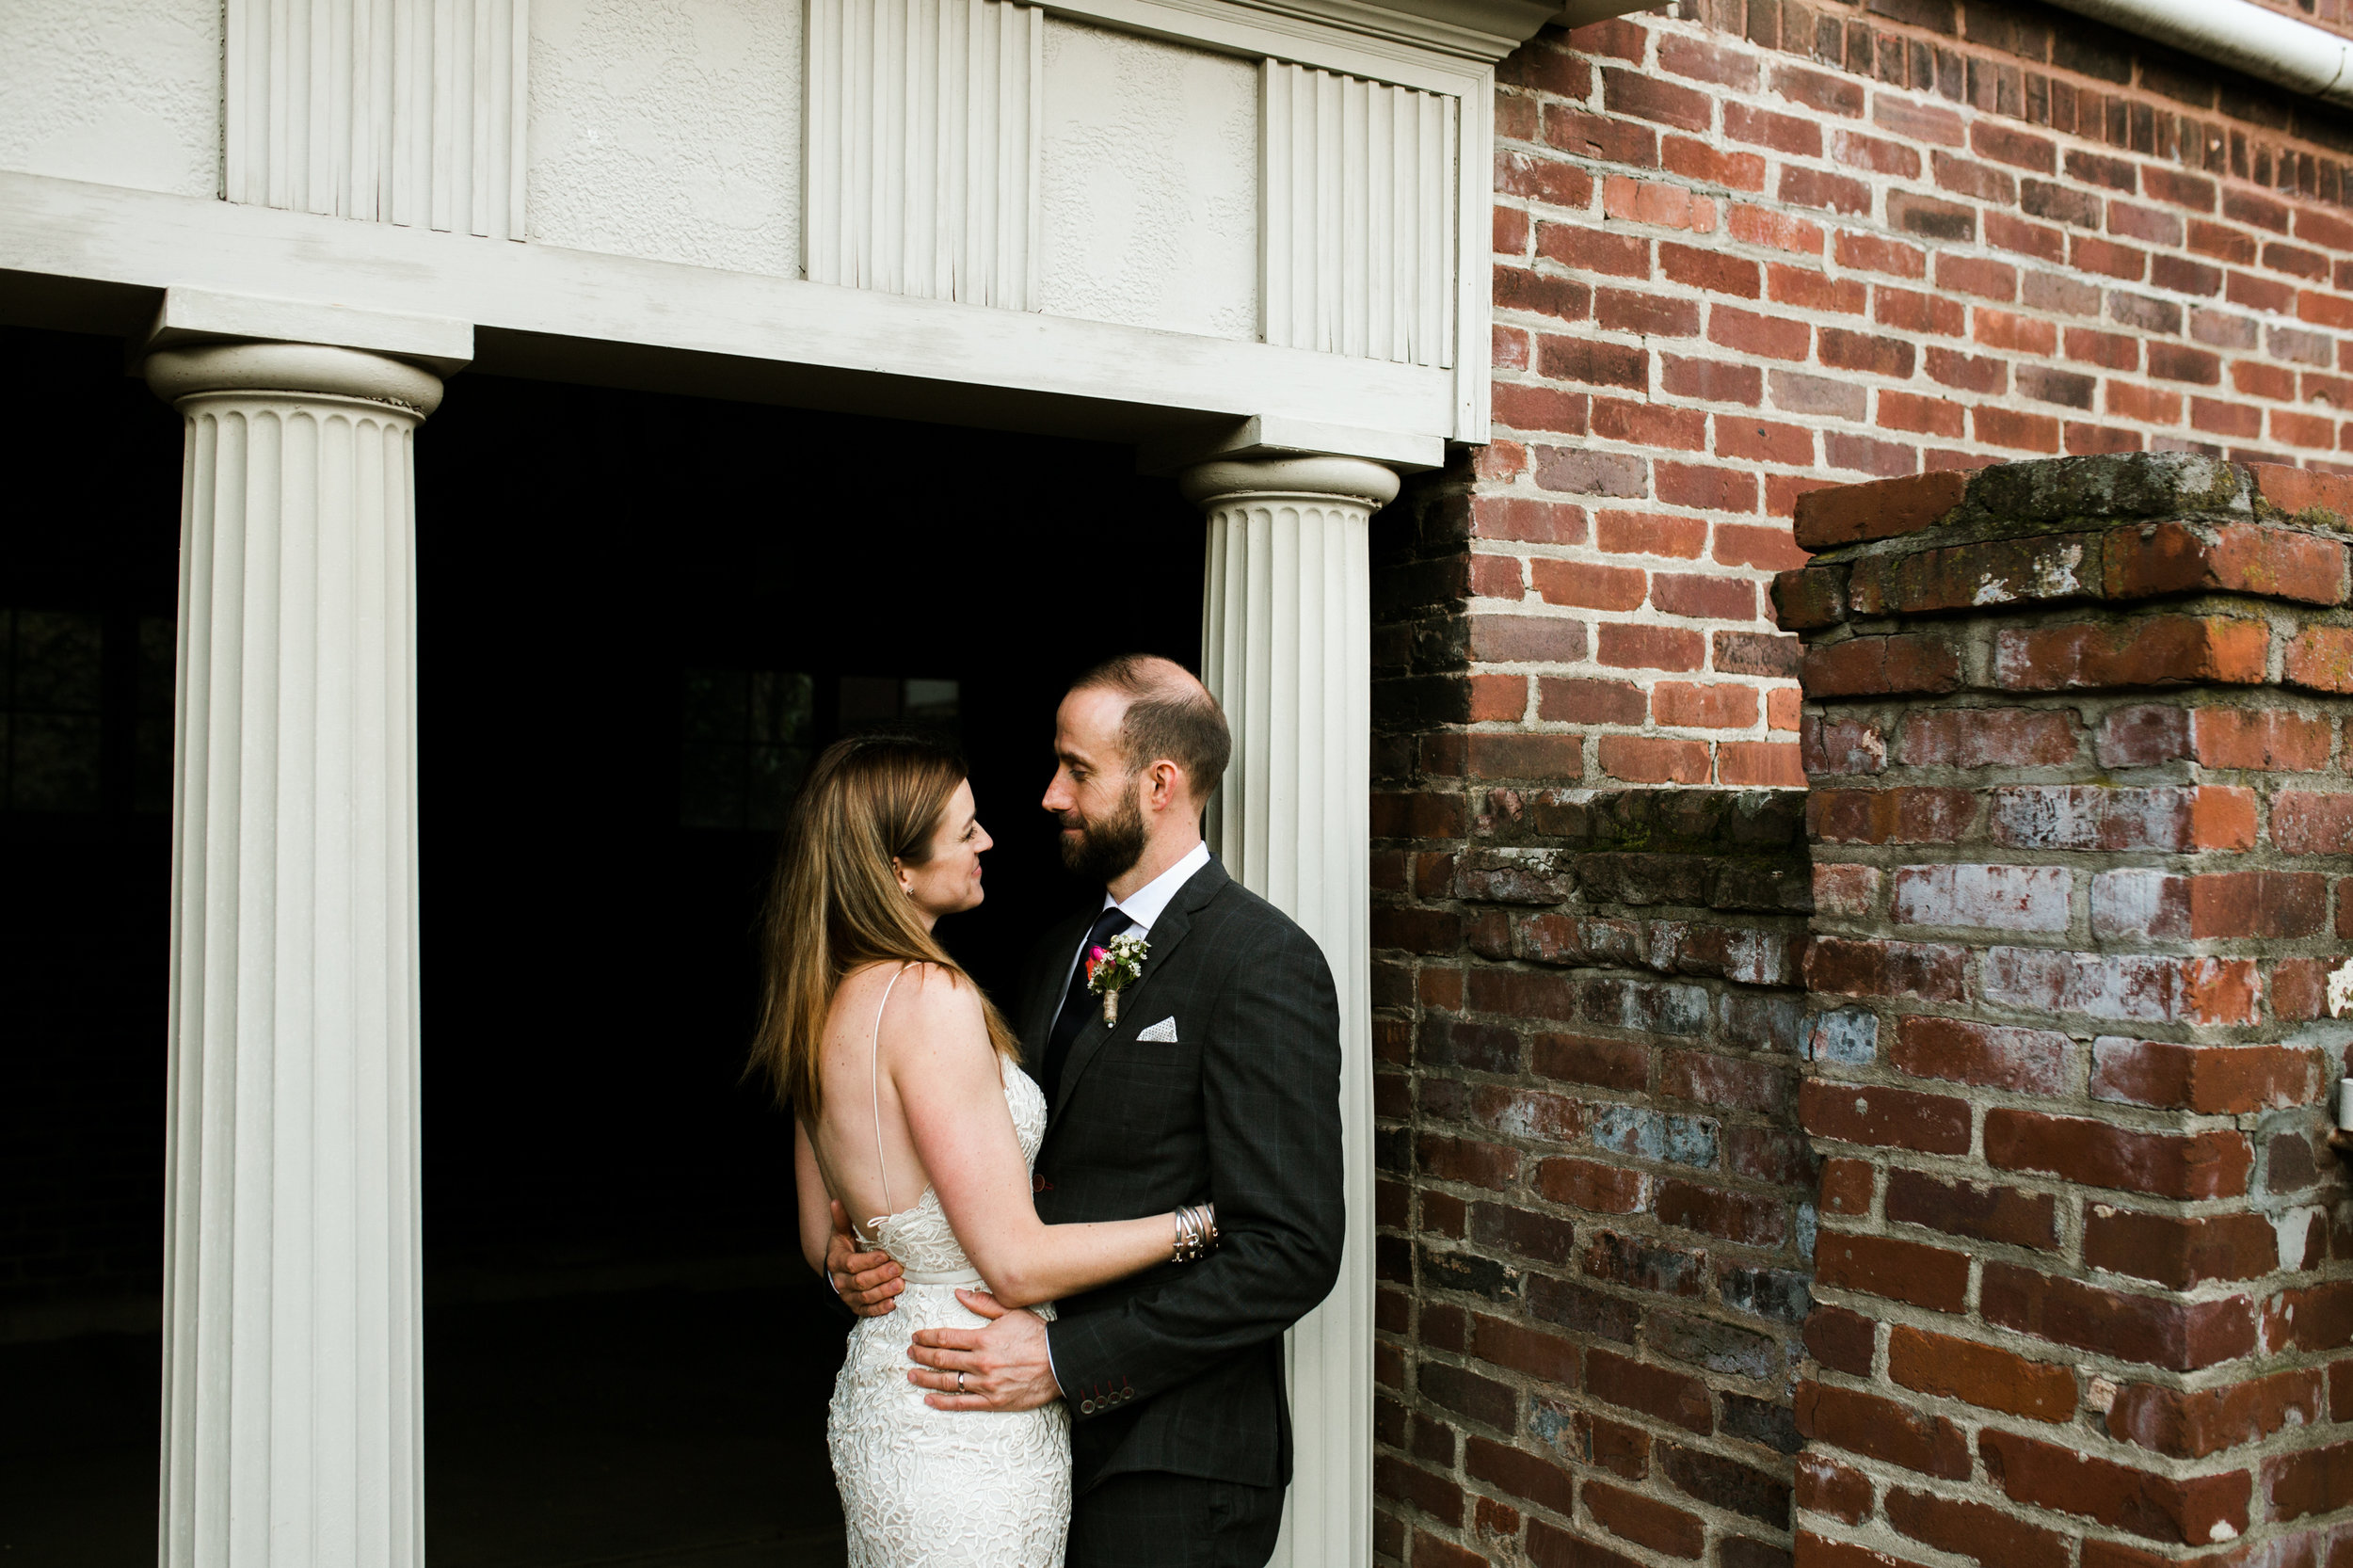 Louisville Courthouse Wedding Louisville Wedding Photographer 2018 Crystal Ludwick Photo Louisville Wedding Photographer Kentucky Wedding Photographer (72 of 76).jpg